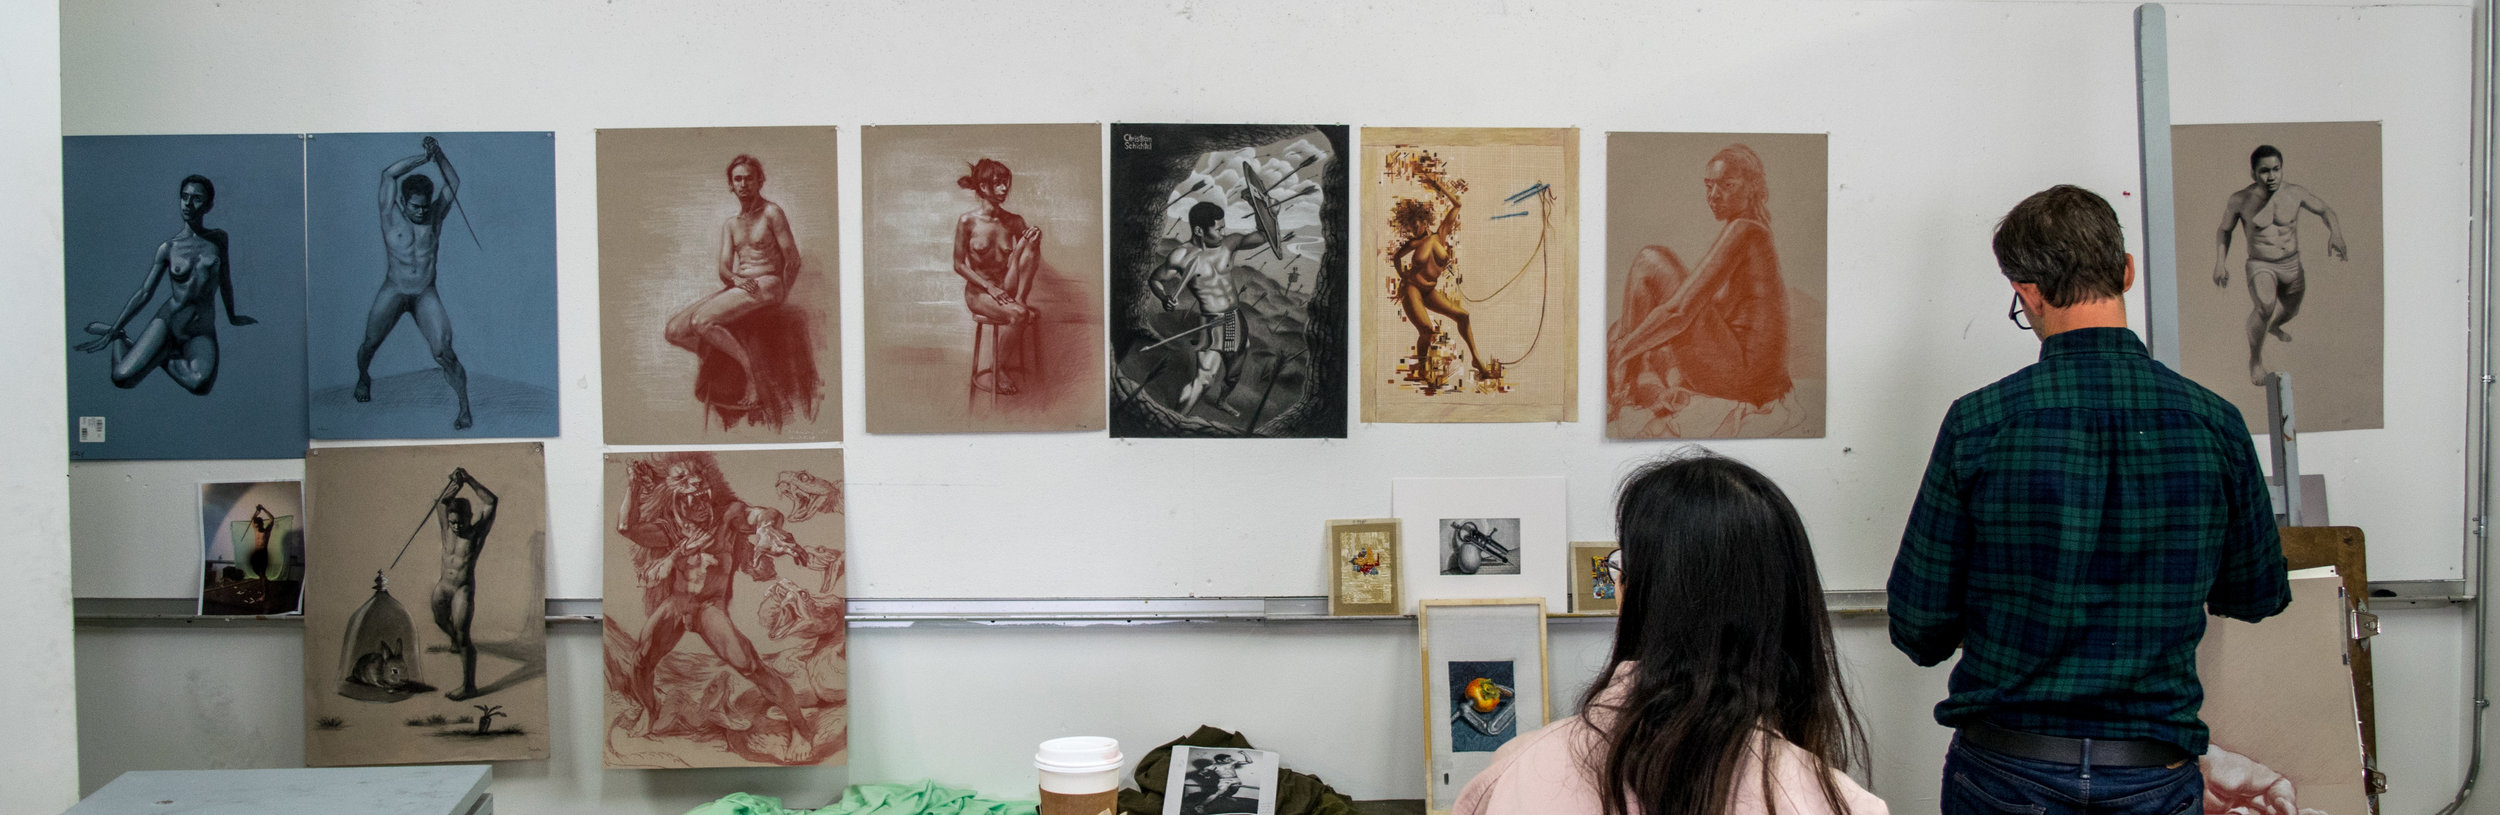 Class final figure drawing lineup and critique.